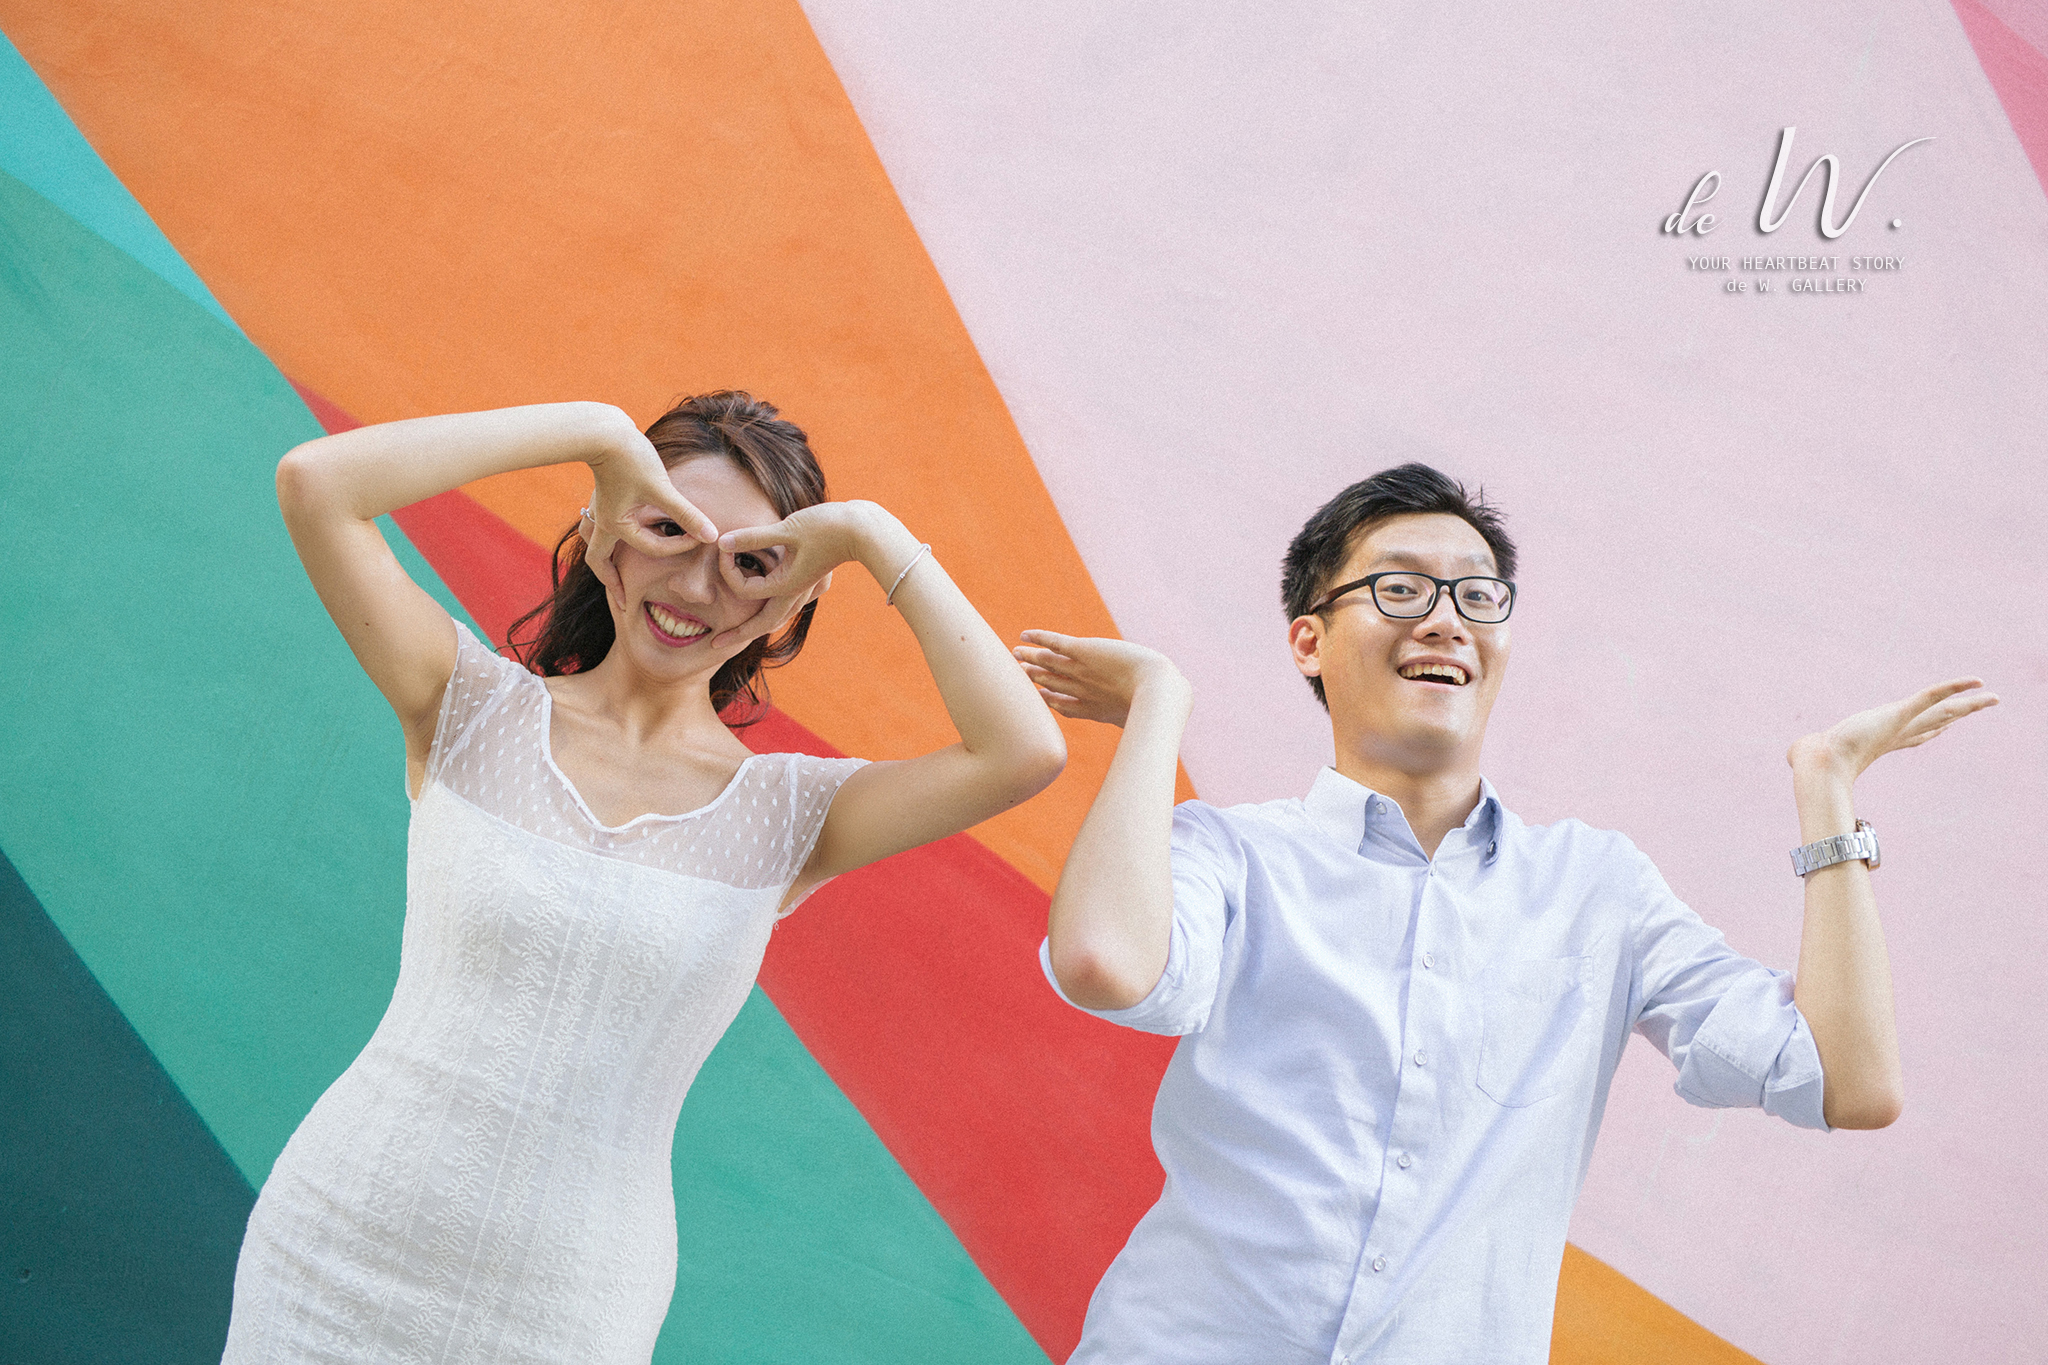 2048 de w gallery Film style hong kong 底片 拍拖 engagement vsco 故事 中環 西環 central-14